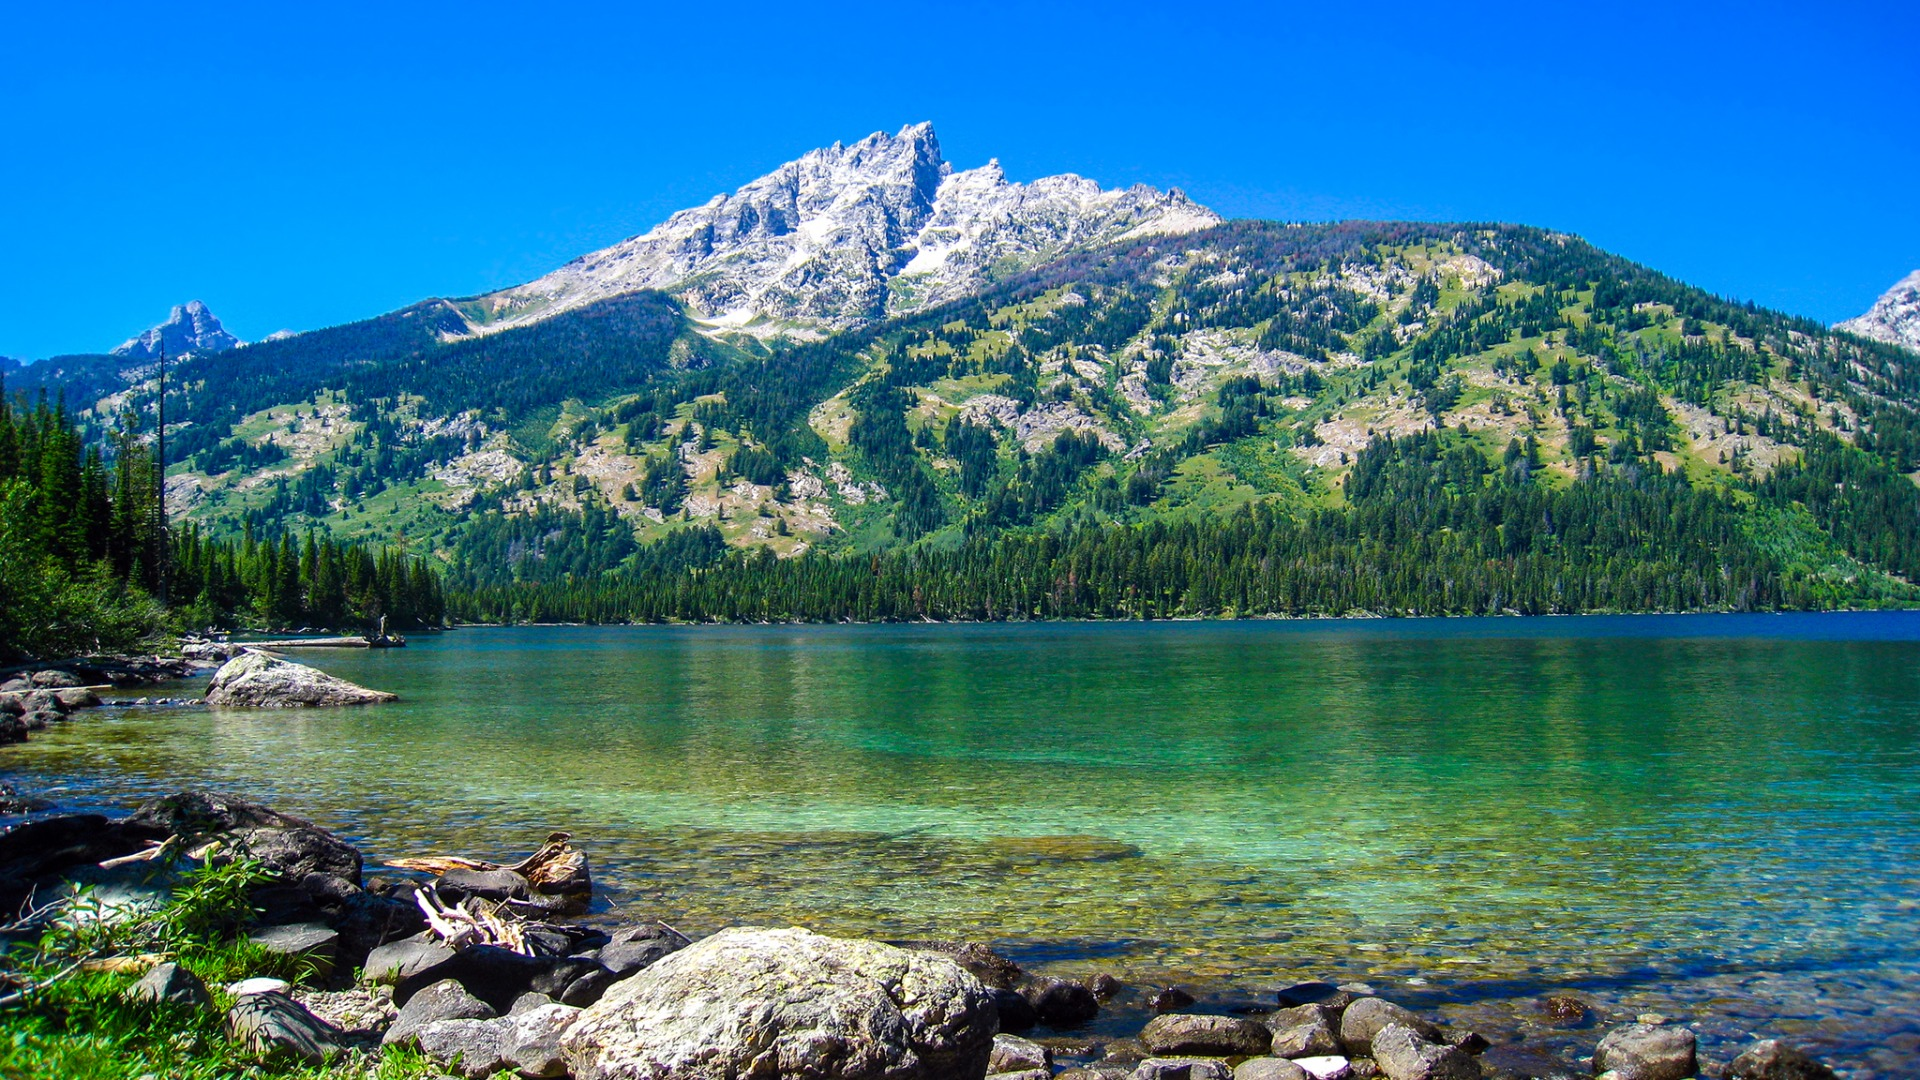 Download-forest-the-sky-snow-lake-reflection-stones-mountain-section-Resolu-wallpaper-wpc9004479